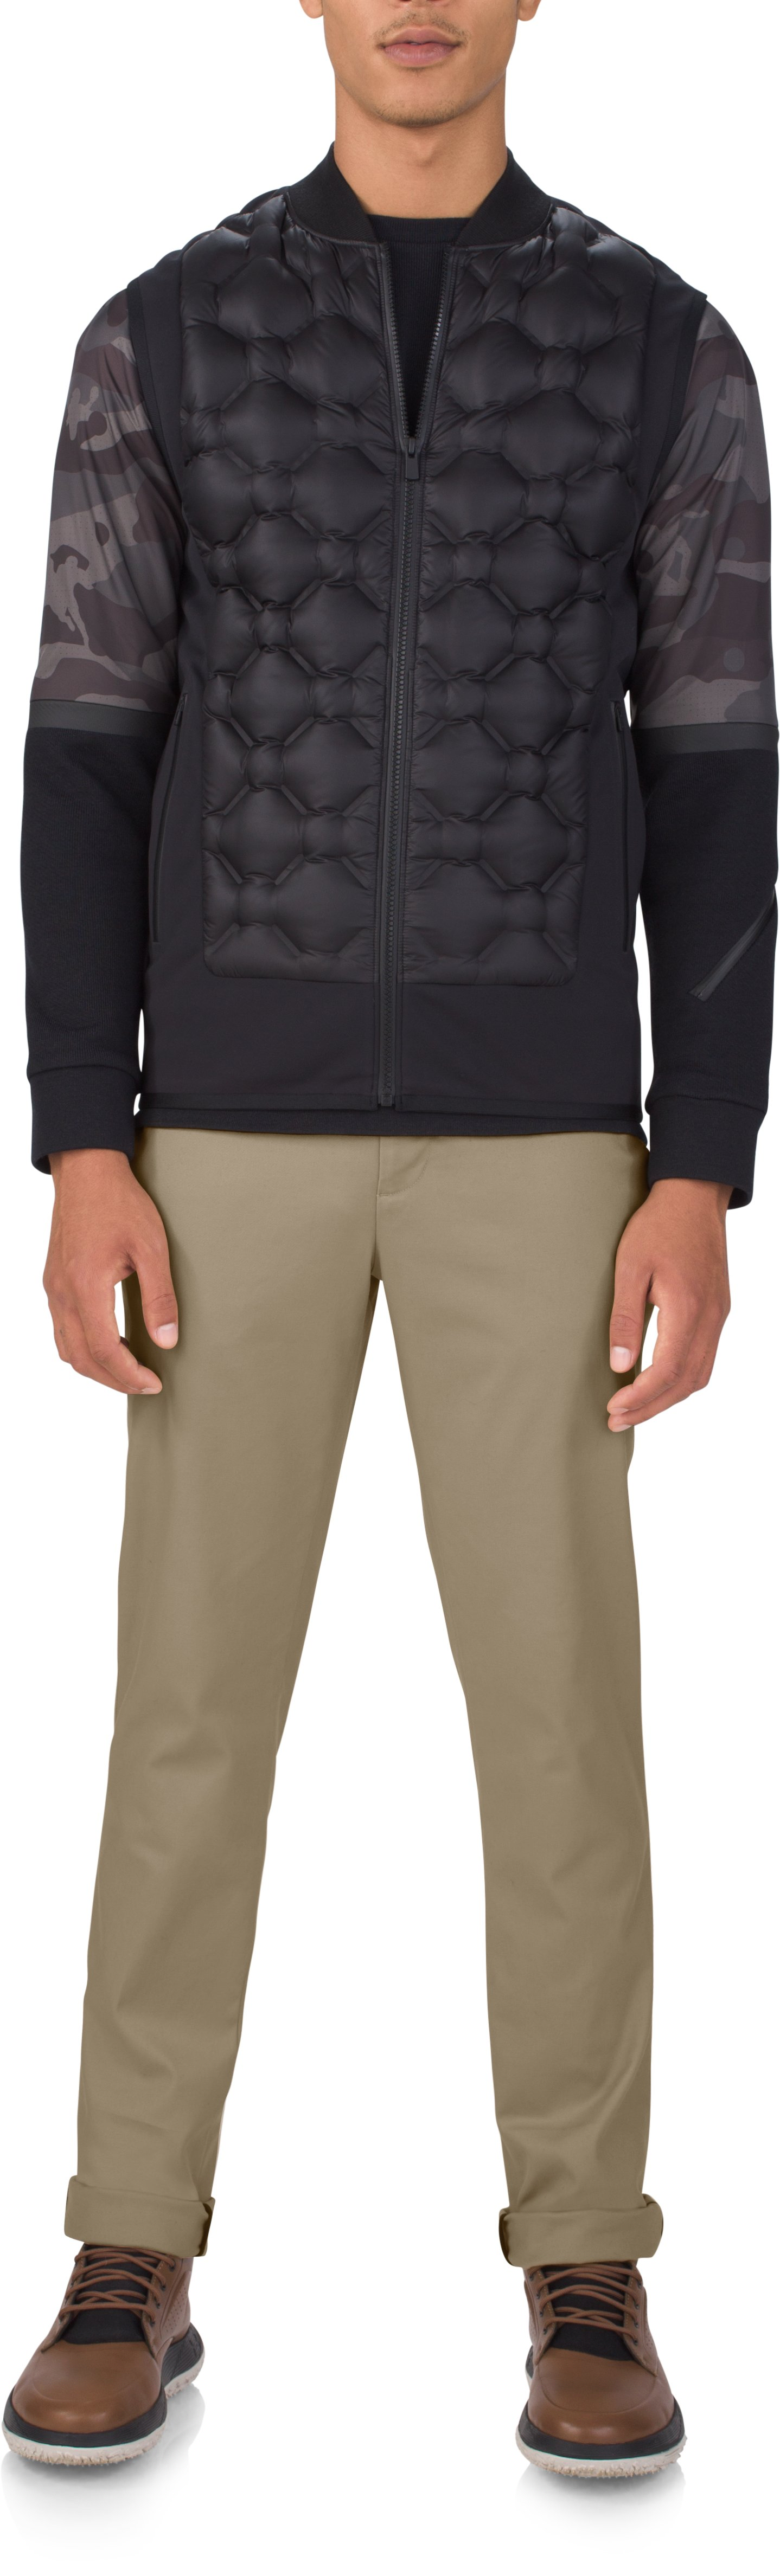 Men's Fieldhouse Rowing Chinos, Khaki, Front